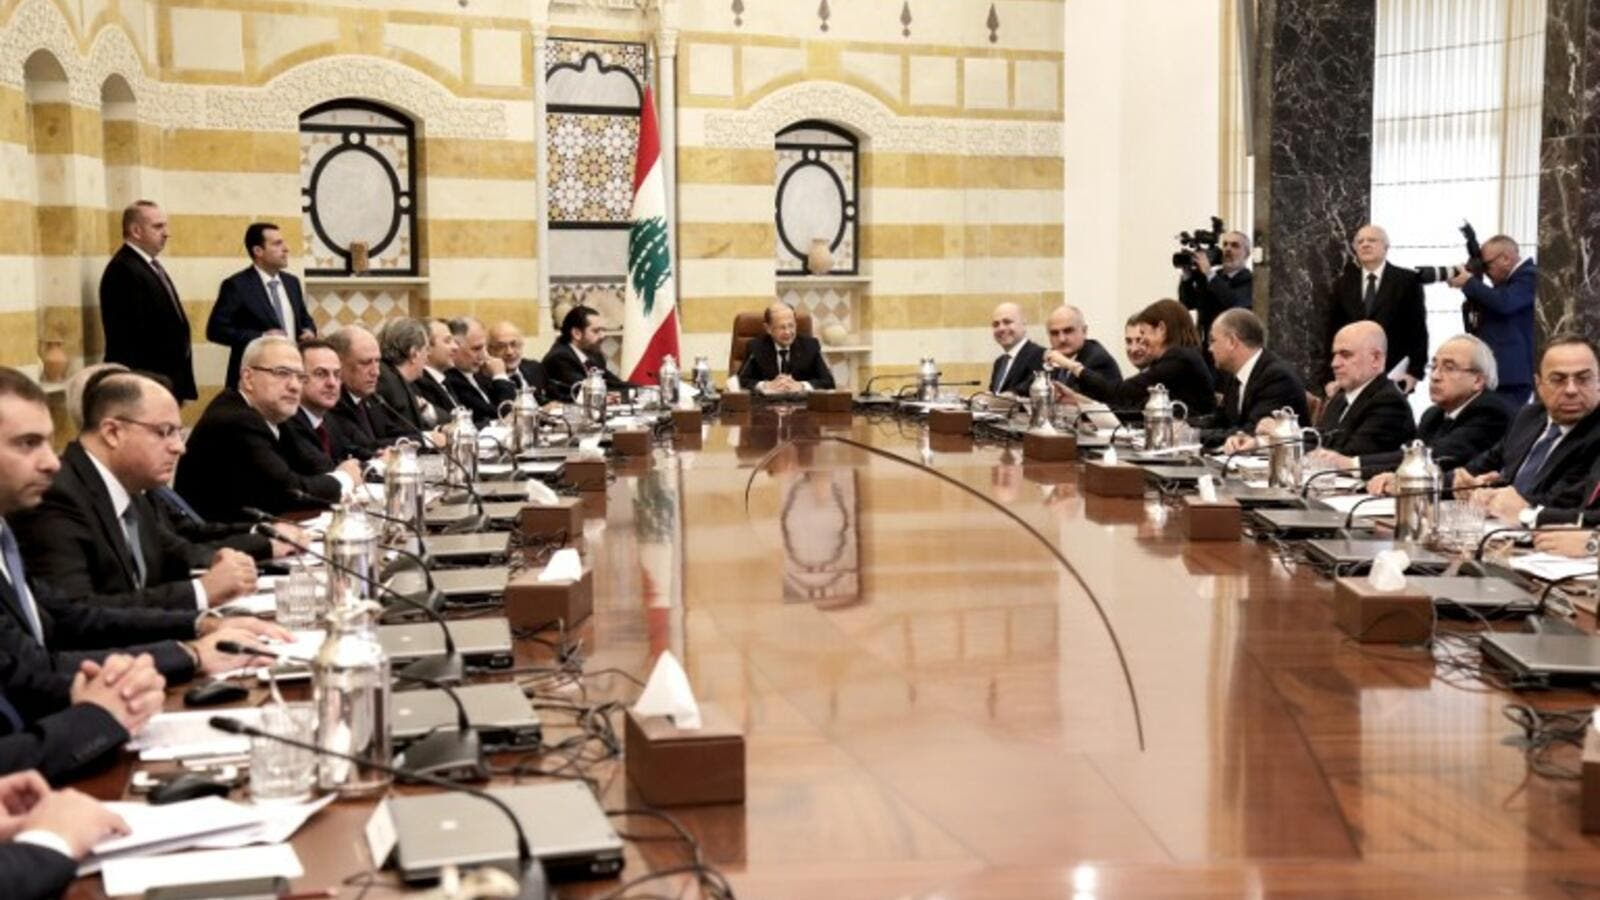 Lebanese President Michel Aoun (C) chairs the new government's first cabinet meeting. (AFP/ File Photo)